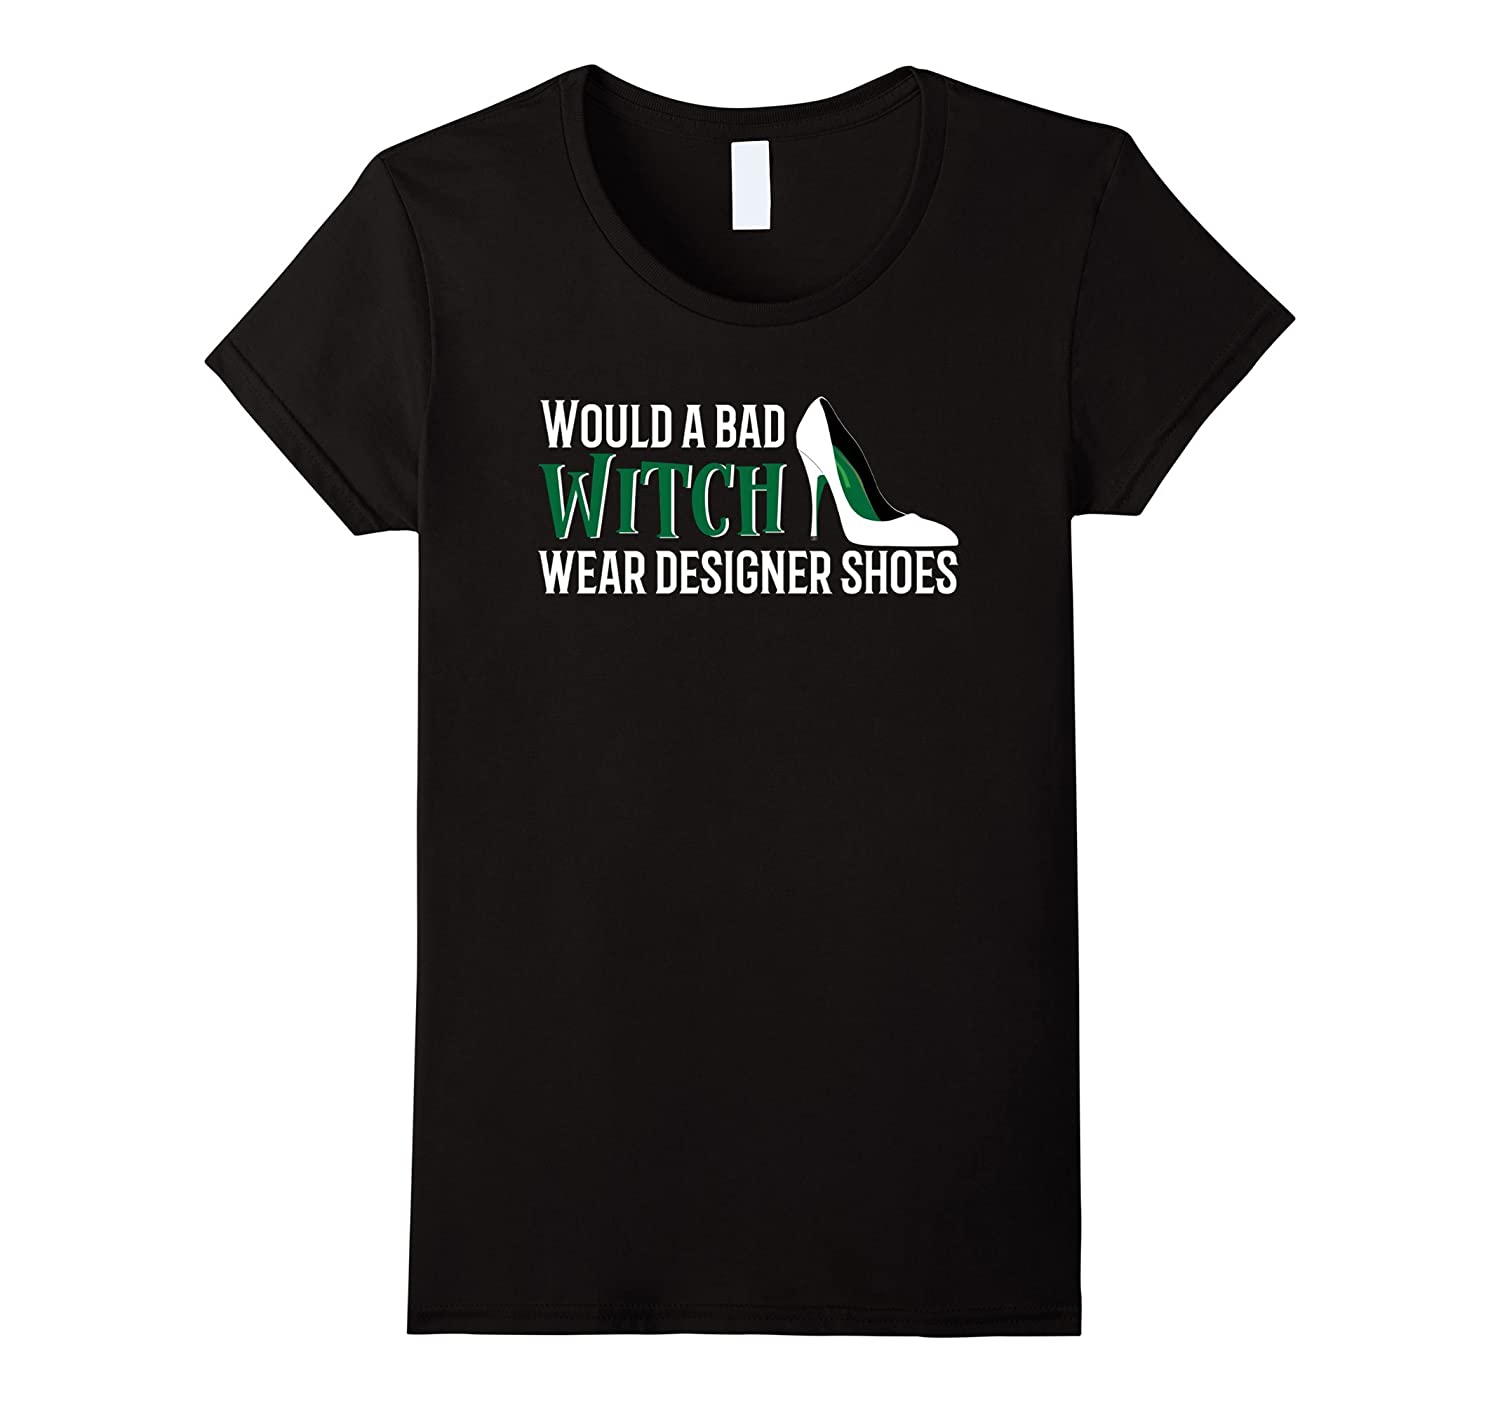 Womens Would a Bad Witch Wear Designer Shoes Halloween Shirt-CL